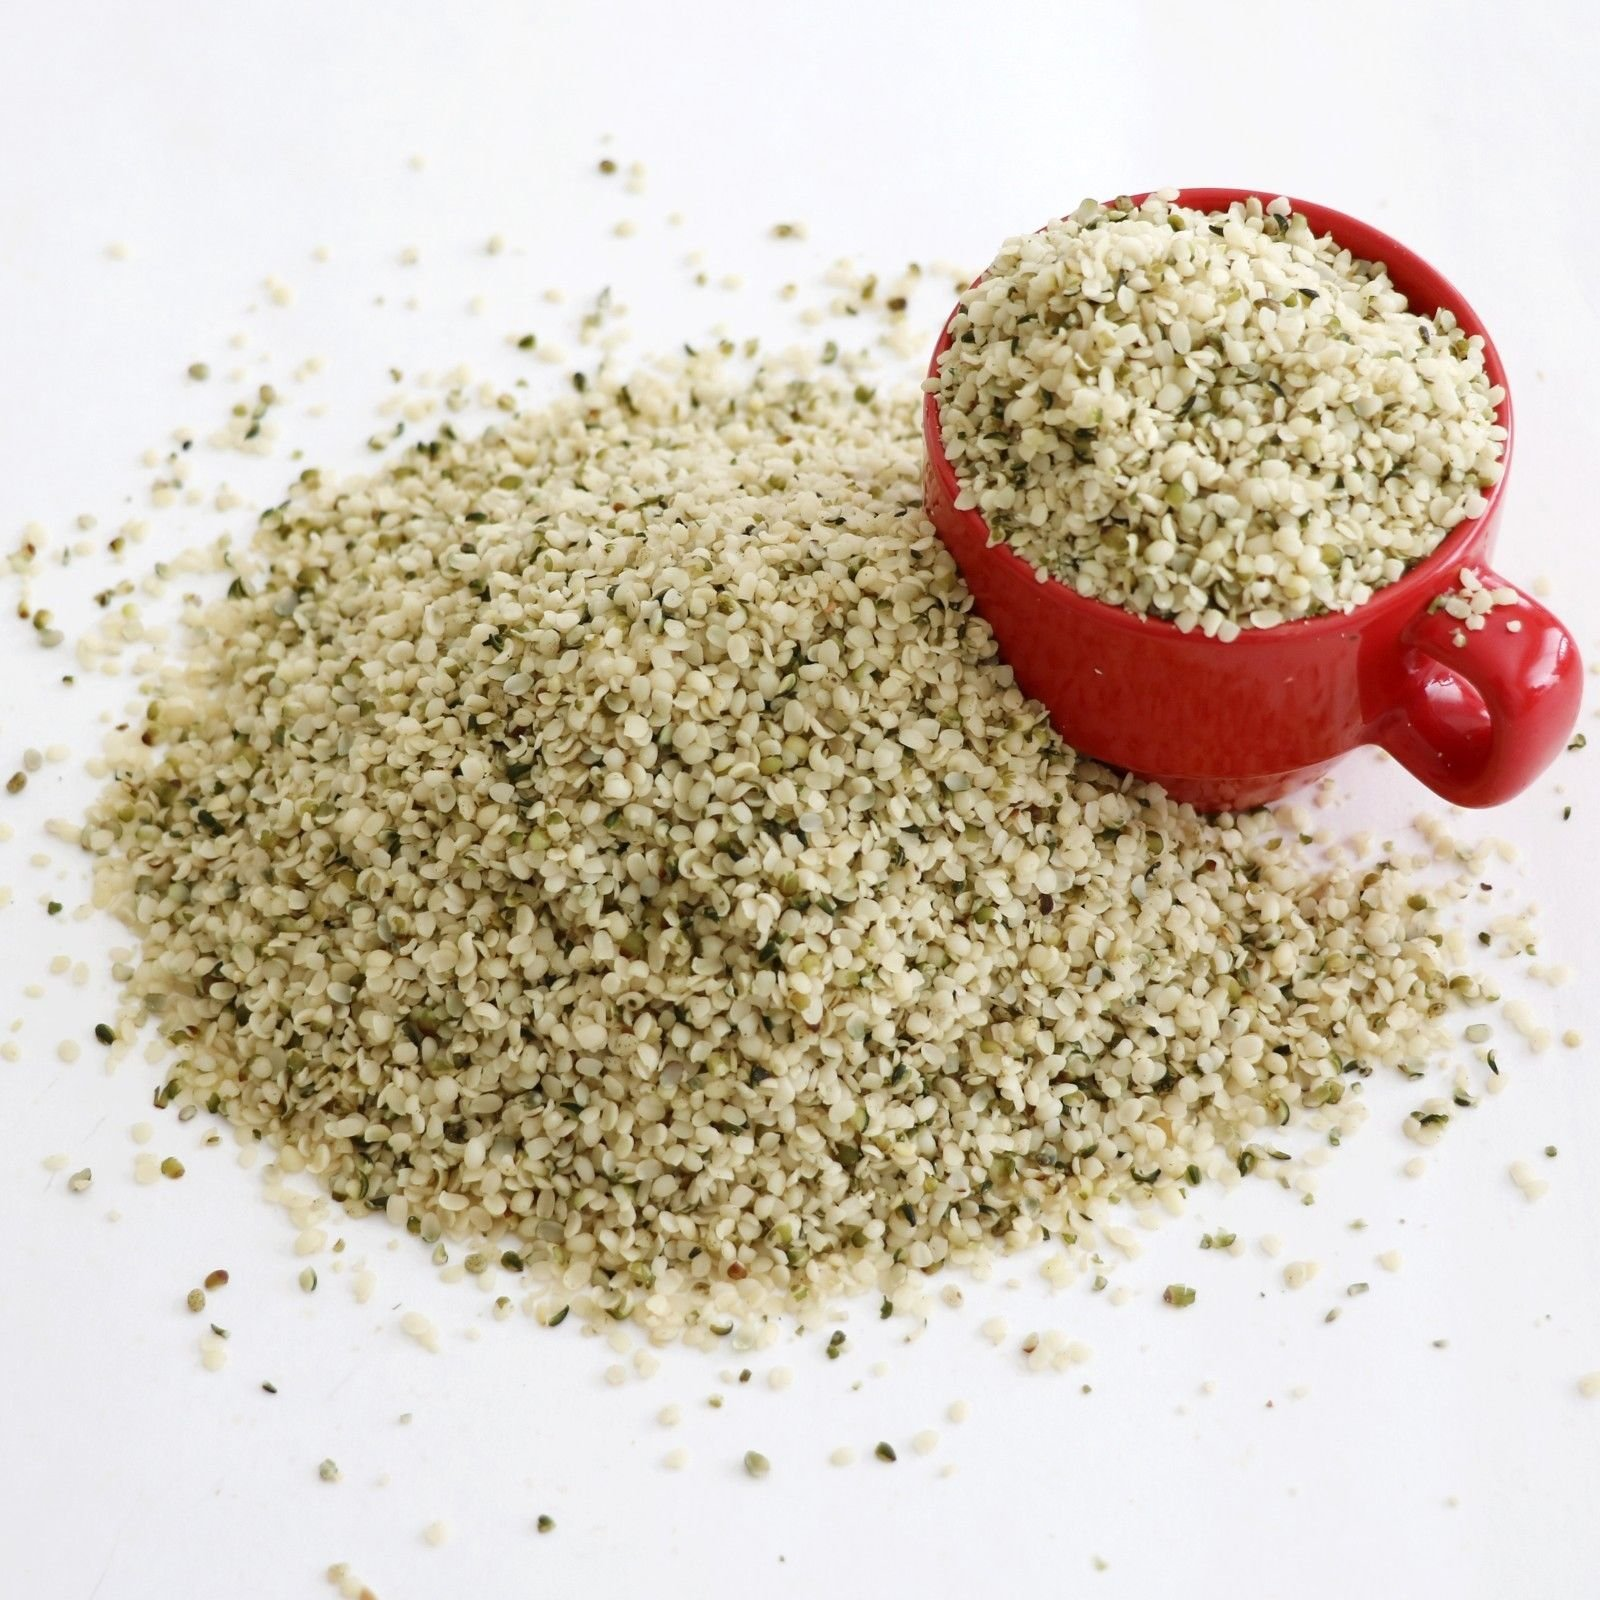 GROWN ORGANIC HEMP HEARTS SEEDS BULK NO ALLERGENS KOSHER CERTIFIED 1/2 lb